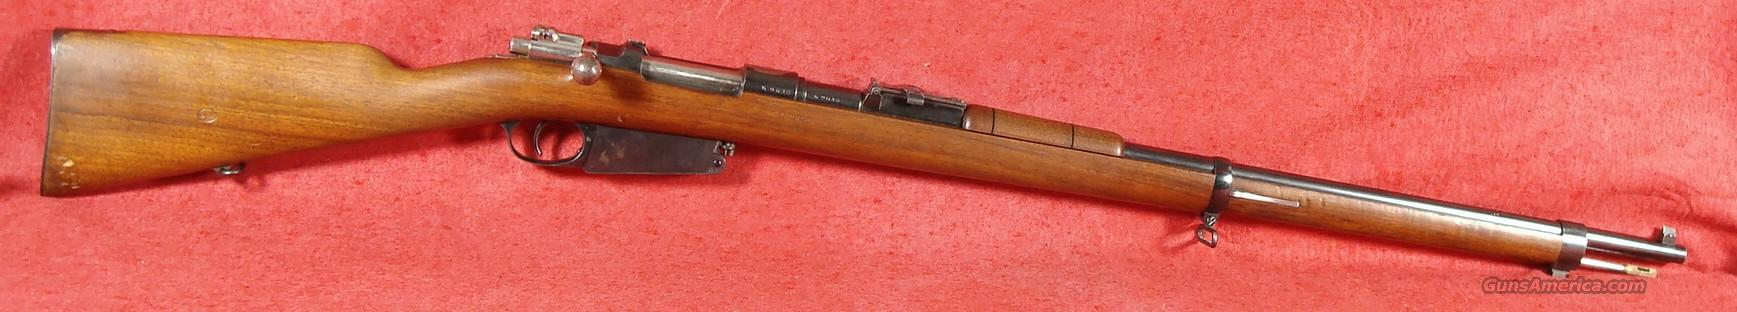 Mauser Argentine Model 1891 Rifle, 7.65MM Mauser, Excellent Condition!  Guns > Rifles > Mauser Rifles > German